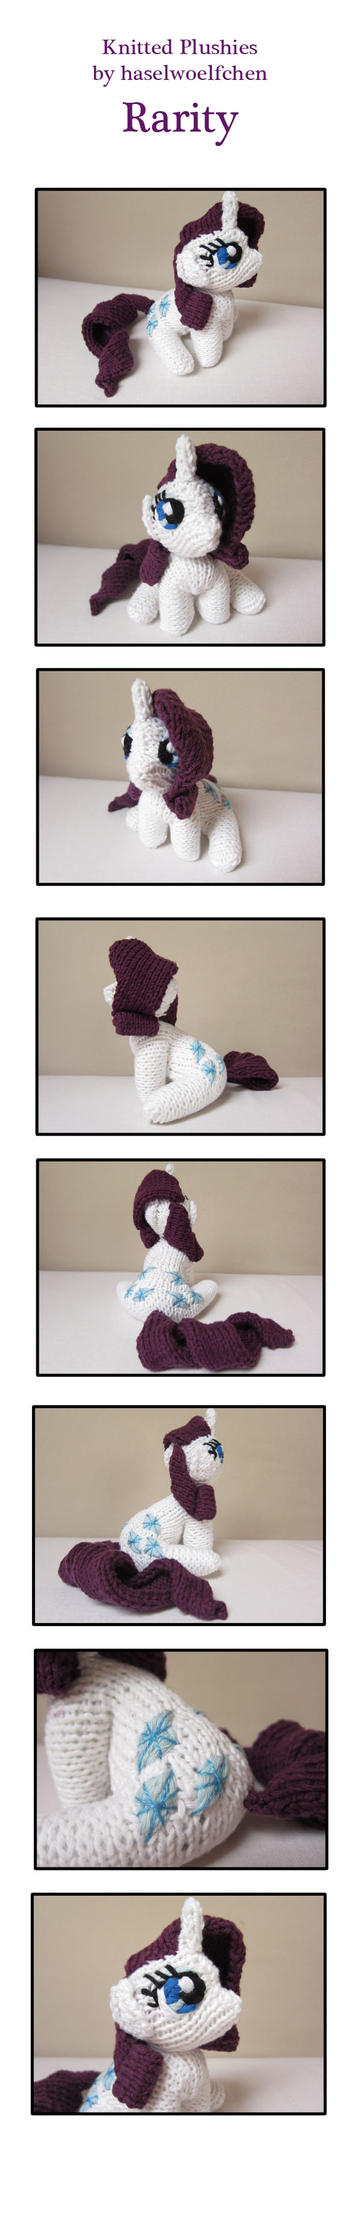 Knitted Plushies - Rarity by haselwoelfchen